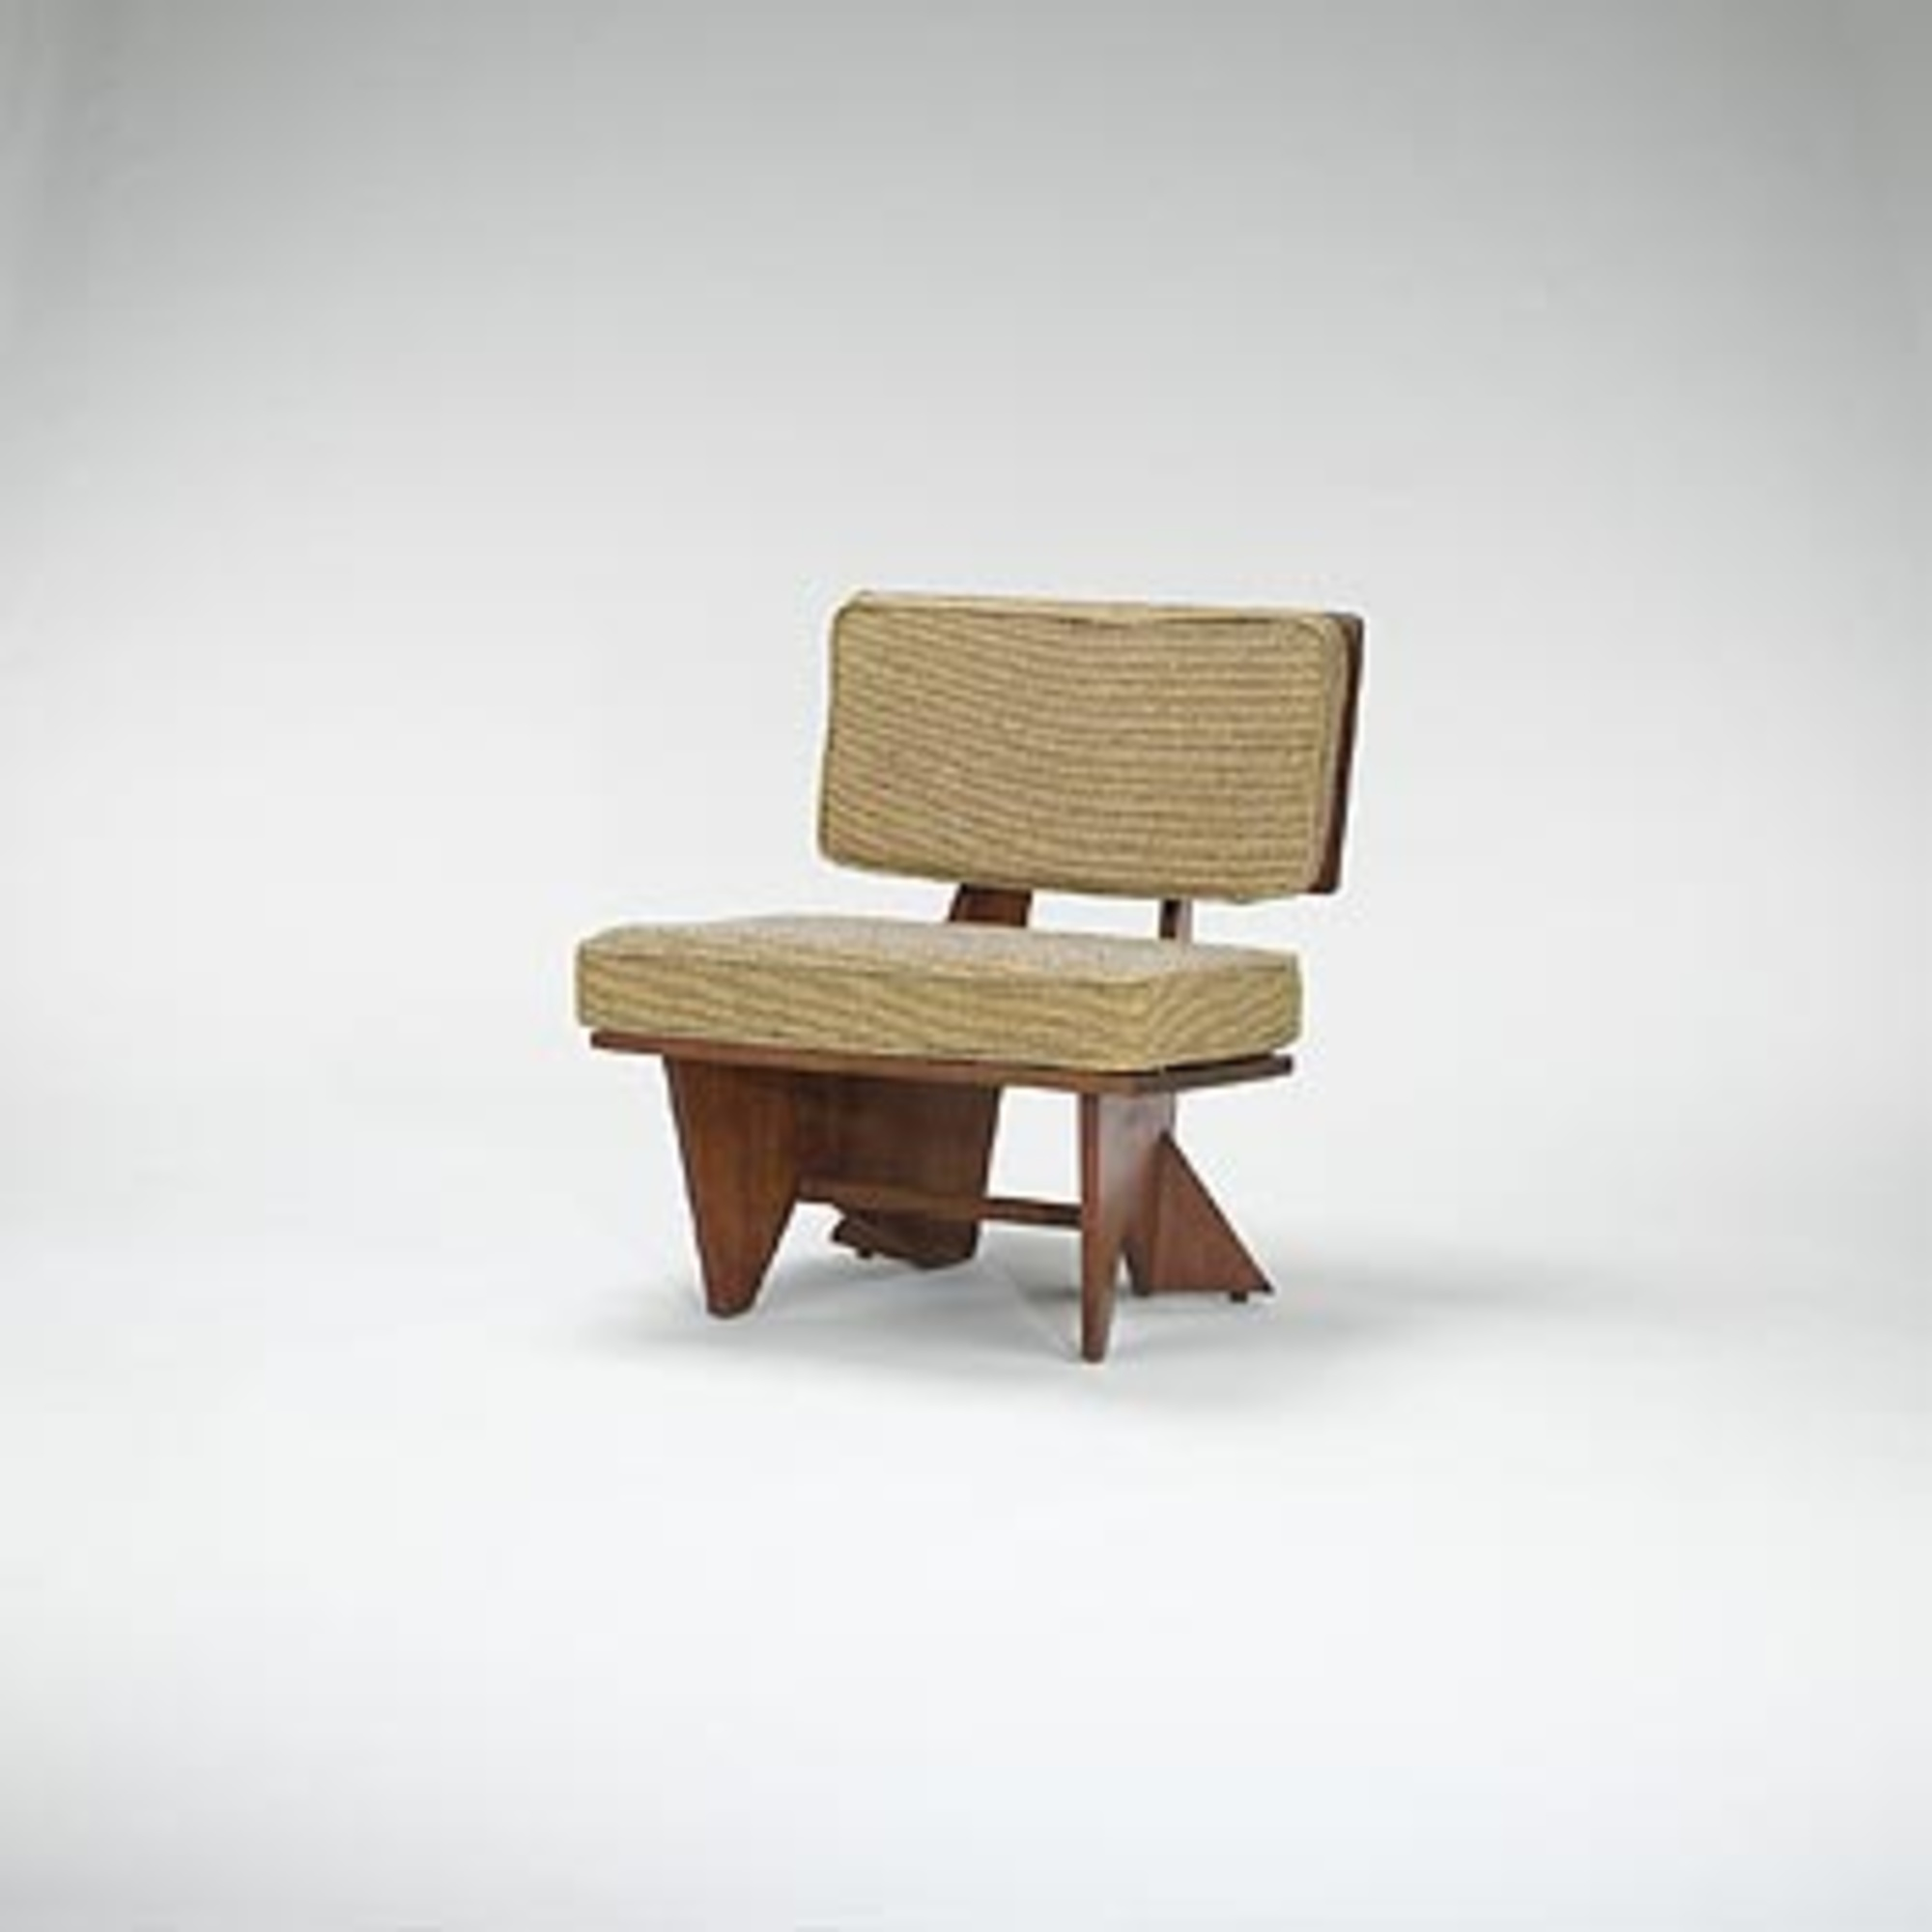 Miraculous 282 Frank Lloyd Wright Lounge Chair From The Robert Winn Theyellowbook Wood Chair Design Ideas Theyellowbookinfo